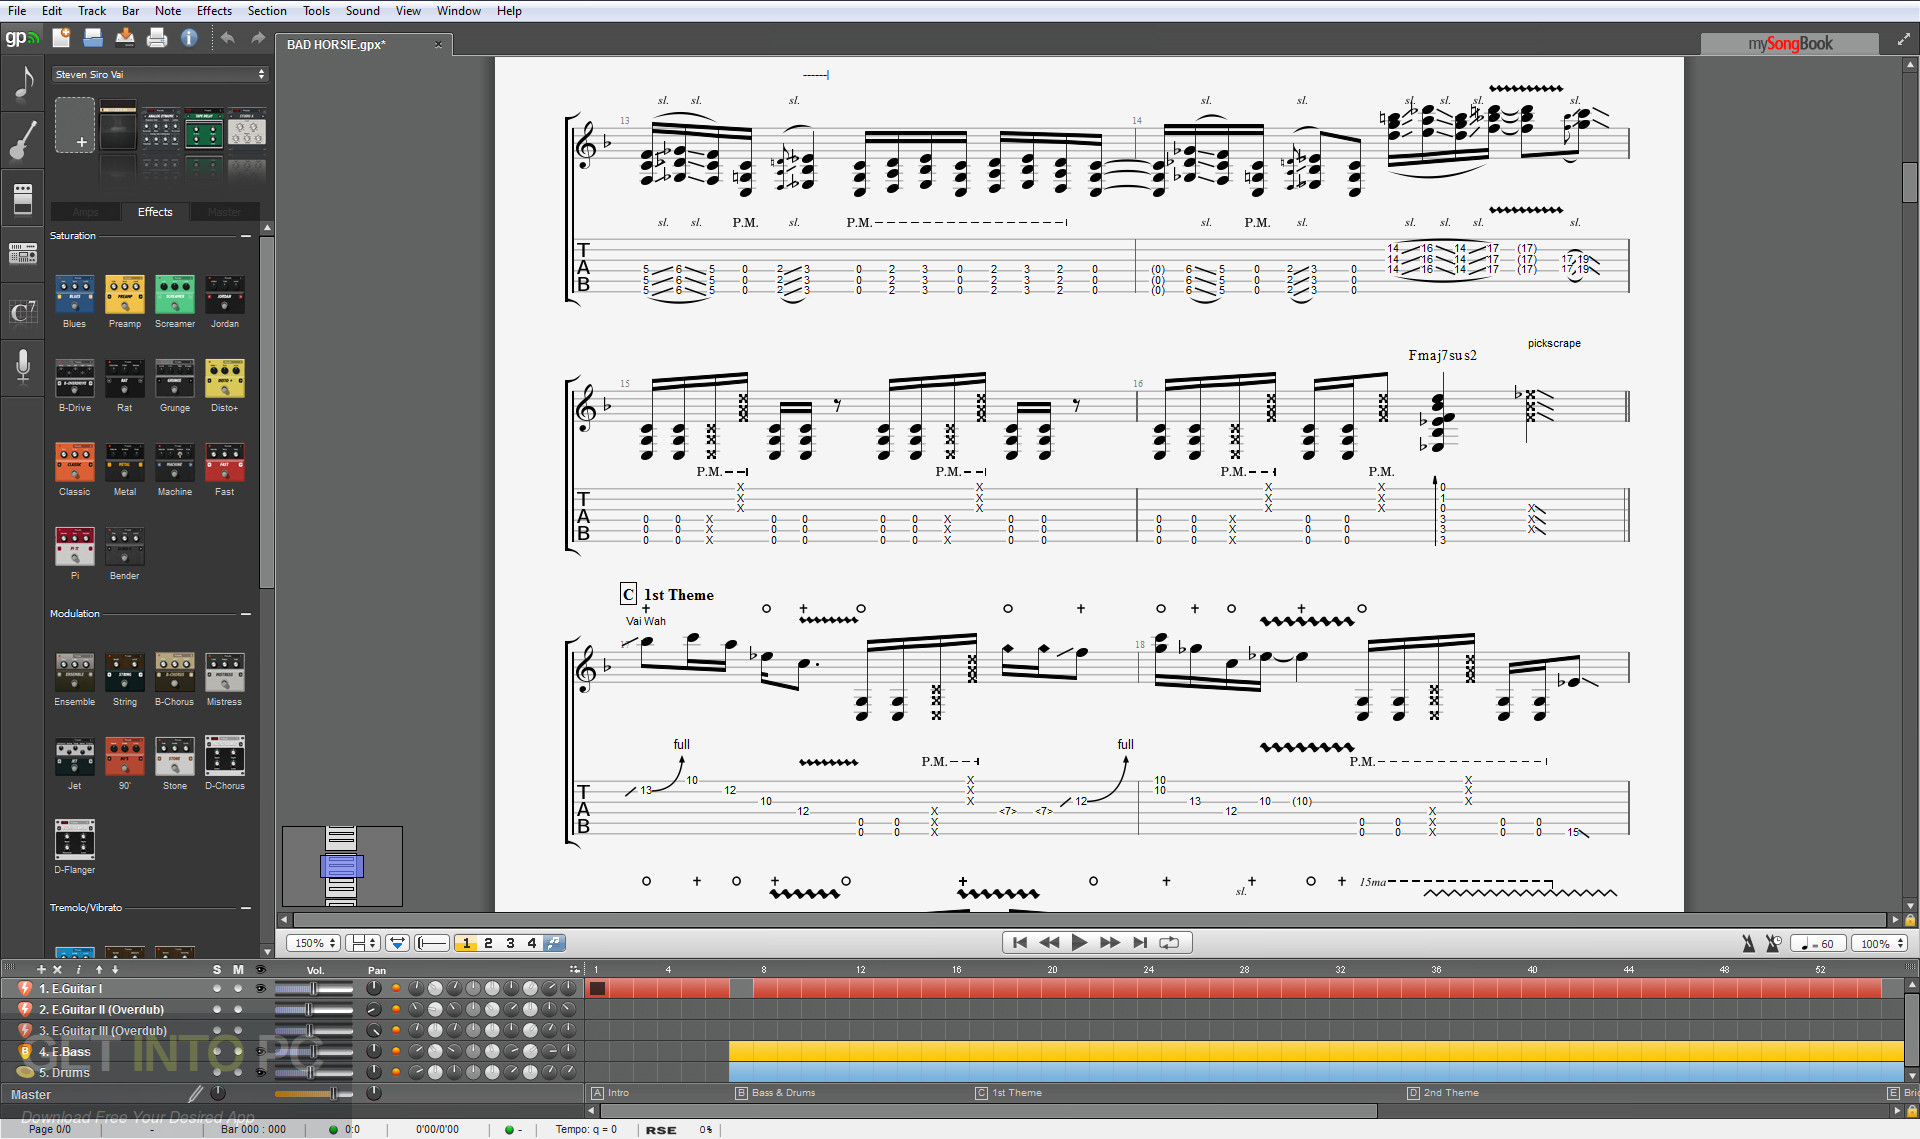 Guitar Pro 6 Latest Version Download